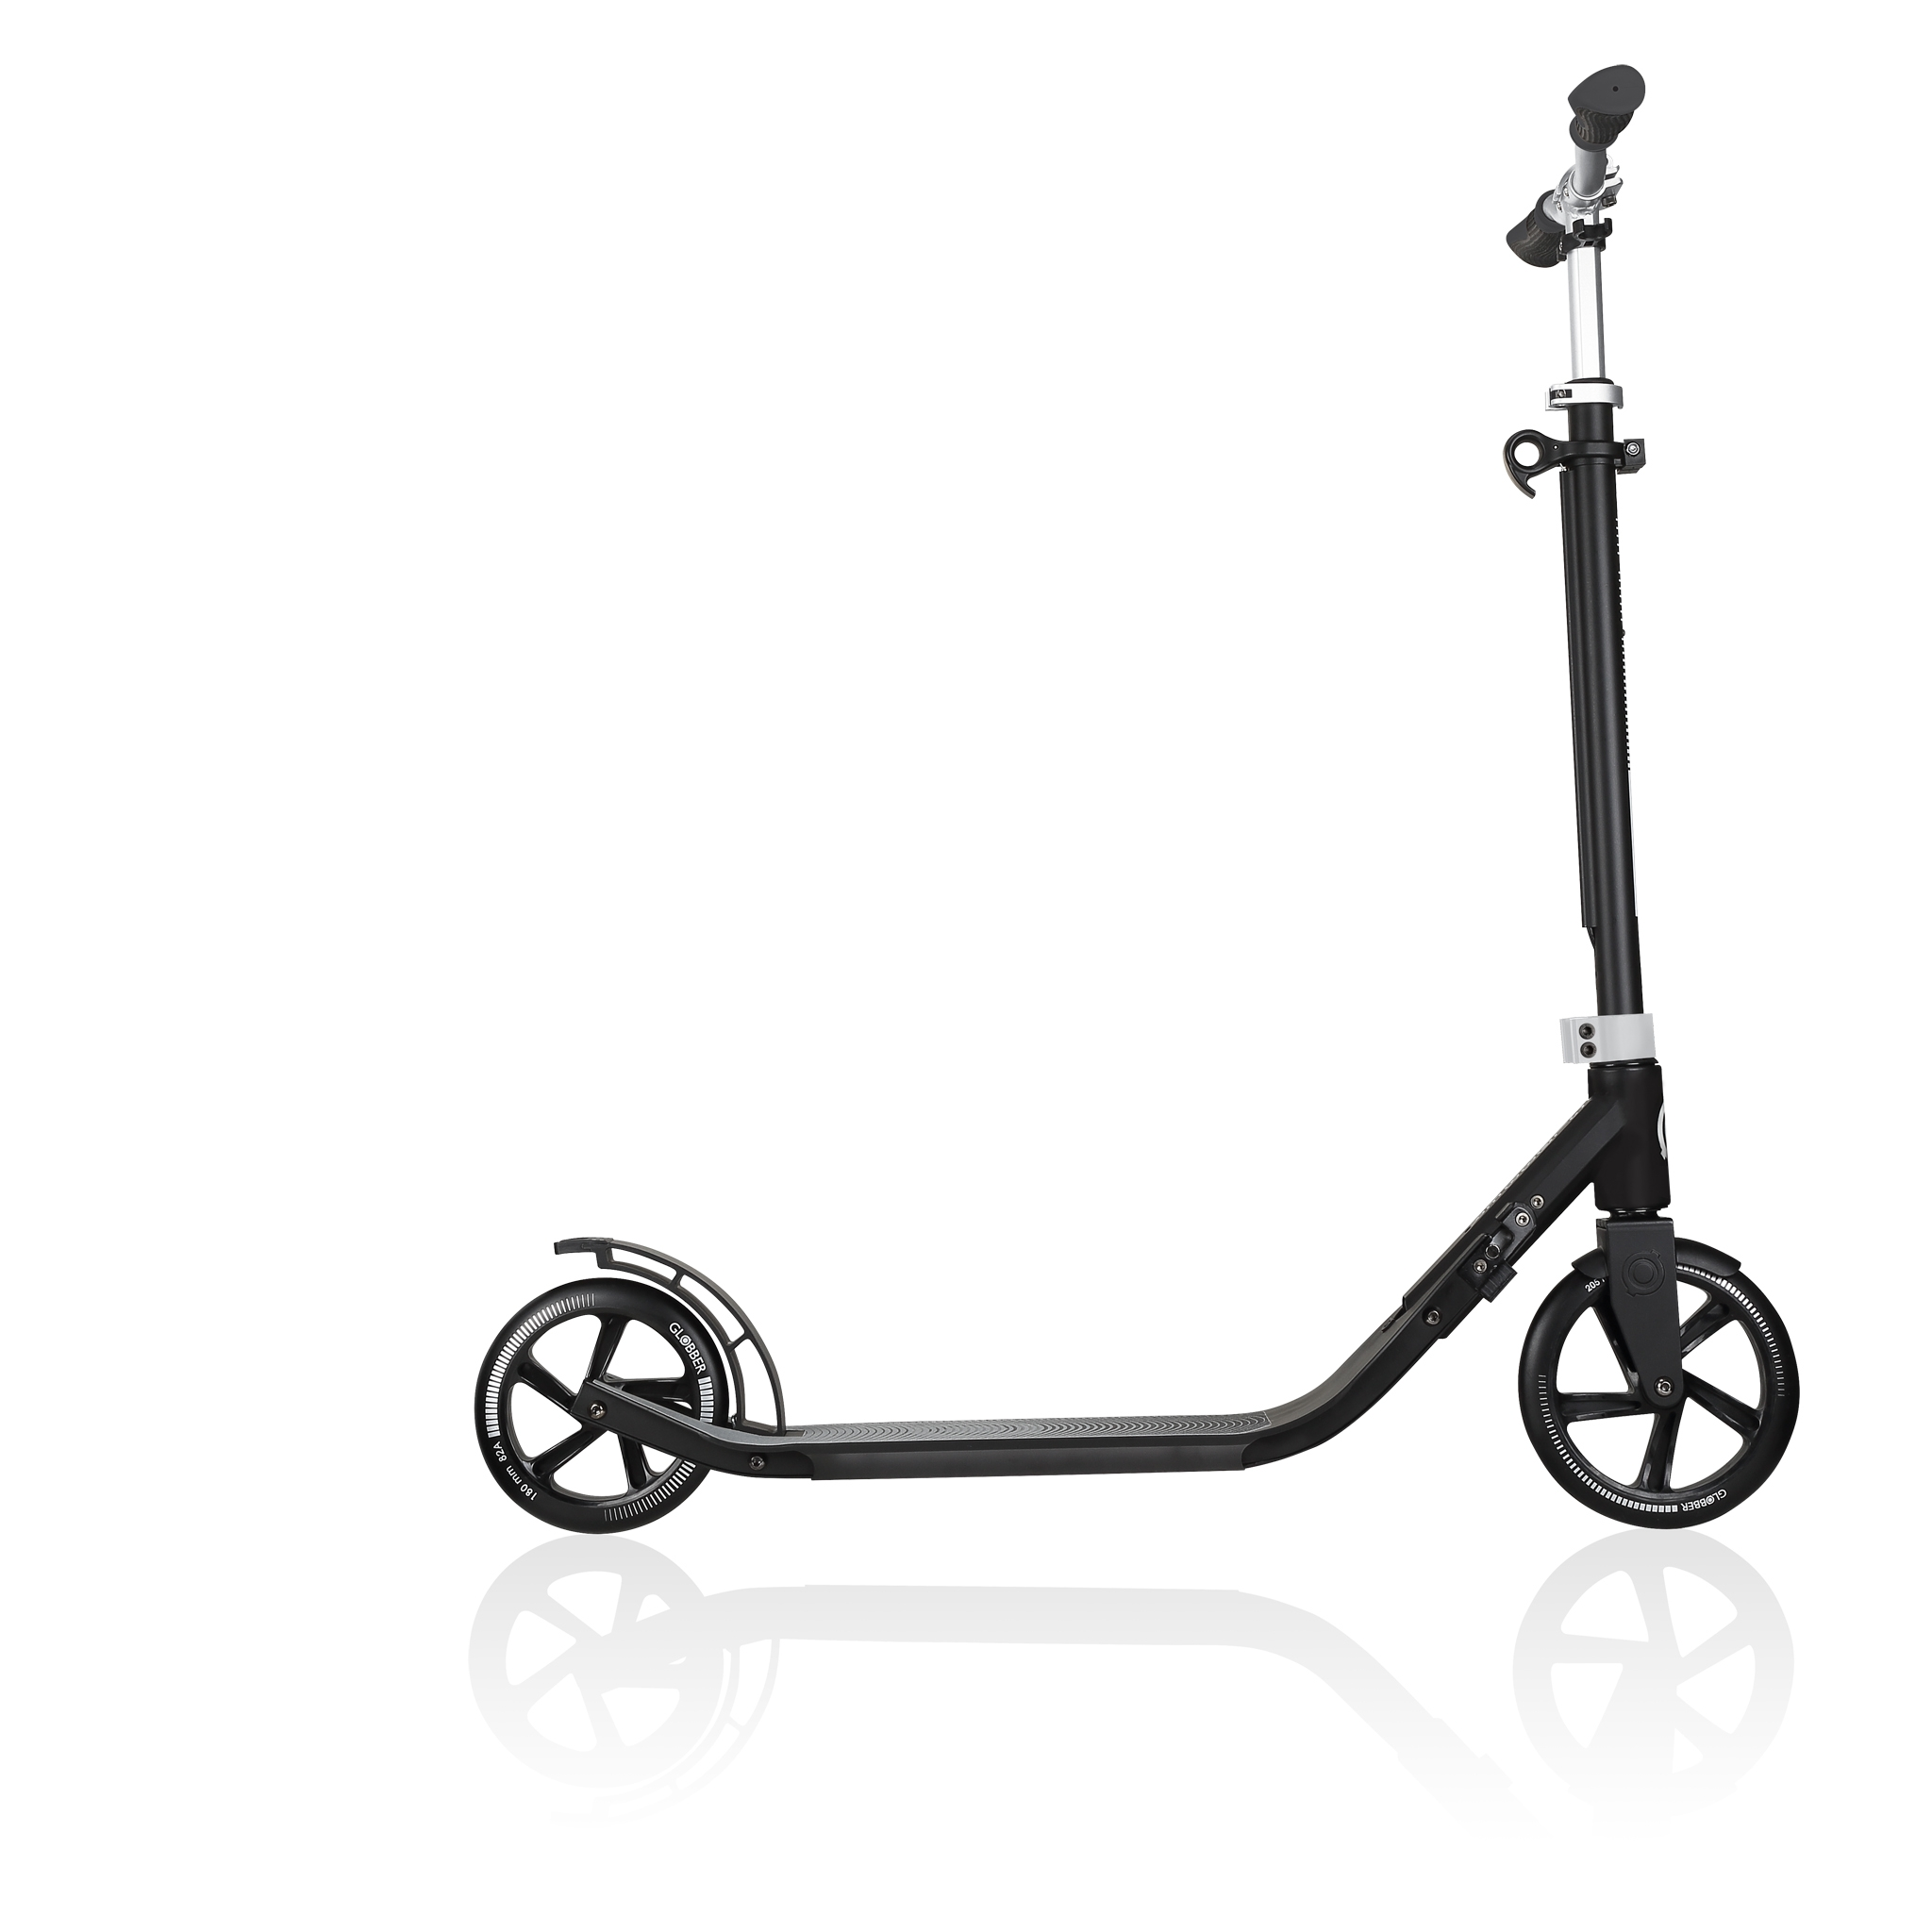 Globber-ONE-NL-205-180-DUO-2-wheel-foldable-scooter-for-adults-aluminium-deck-lead-grey 3